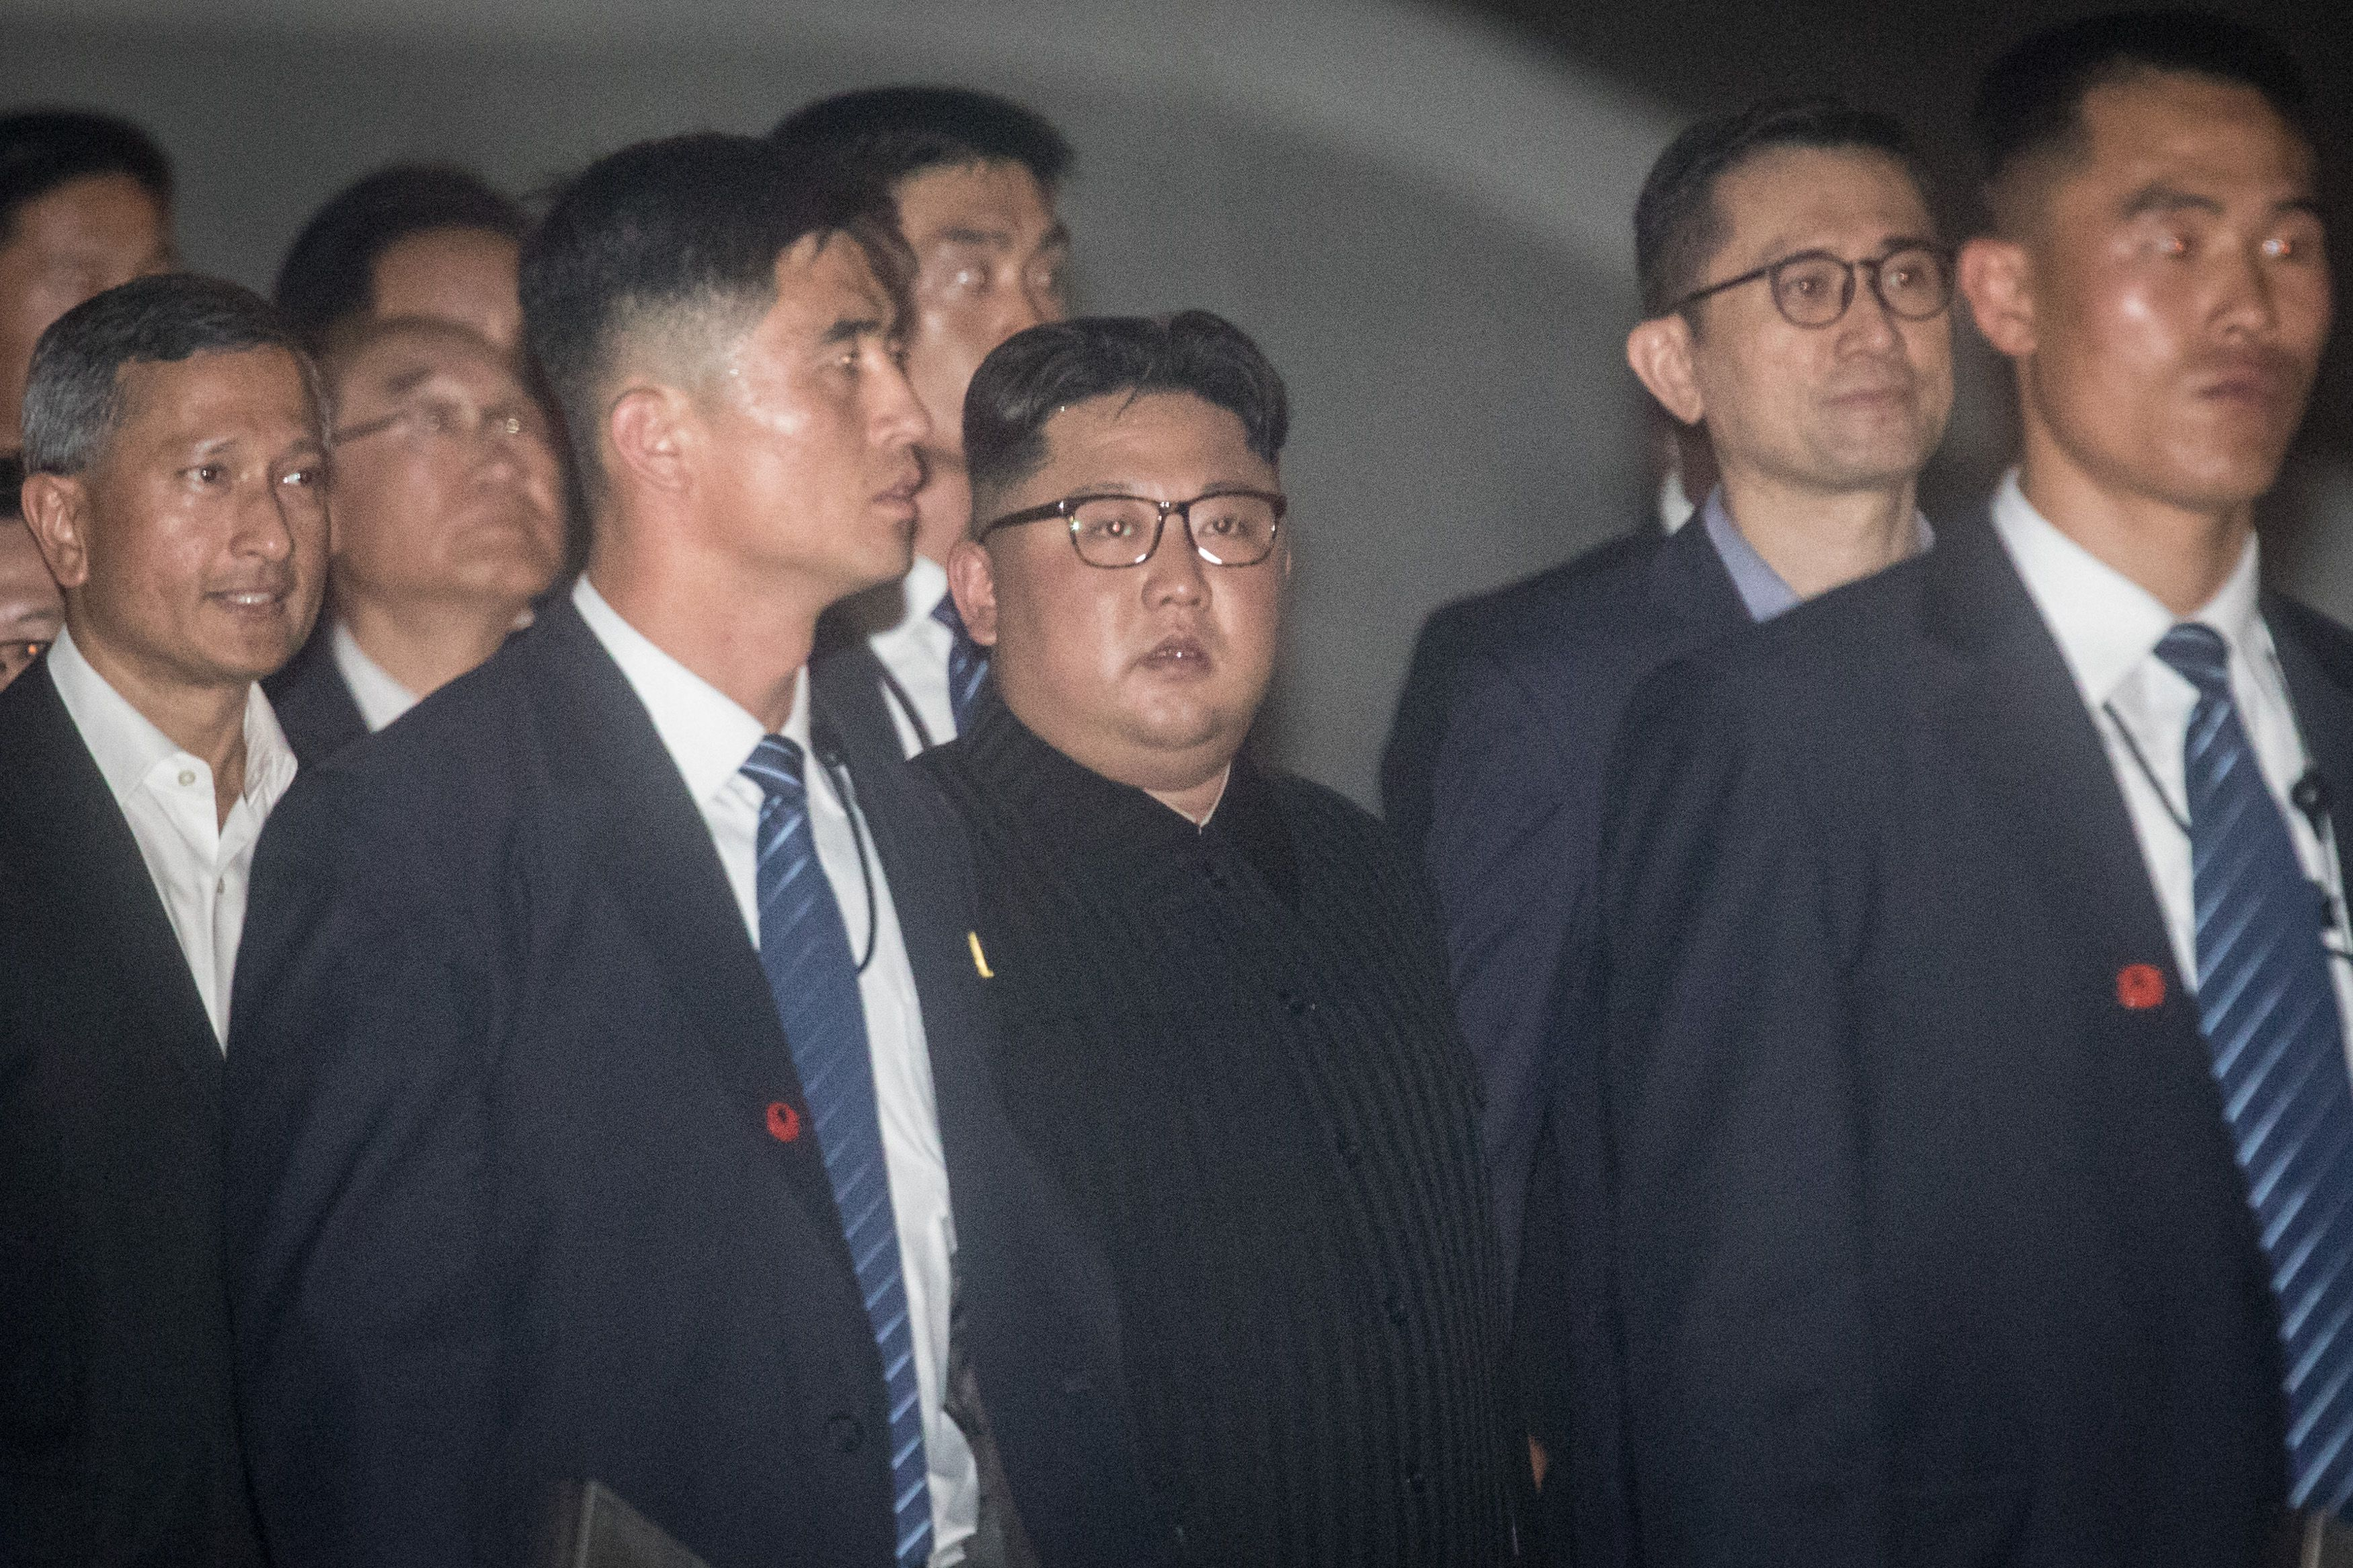 Kim Jong-un among bodyguards